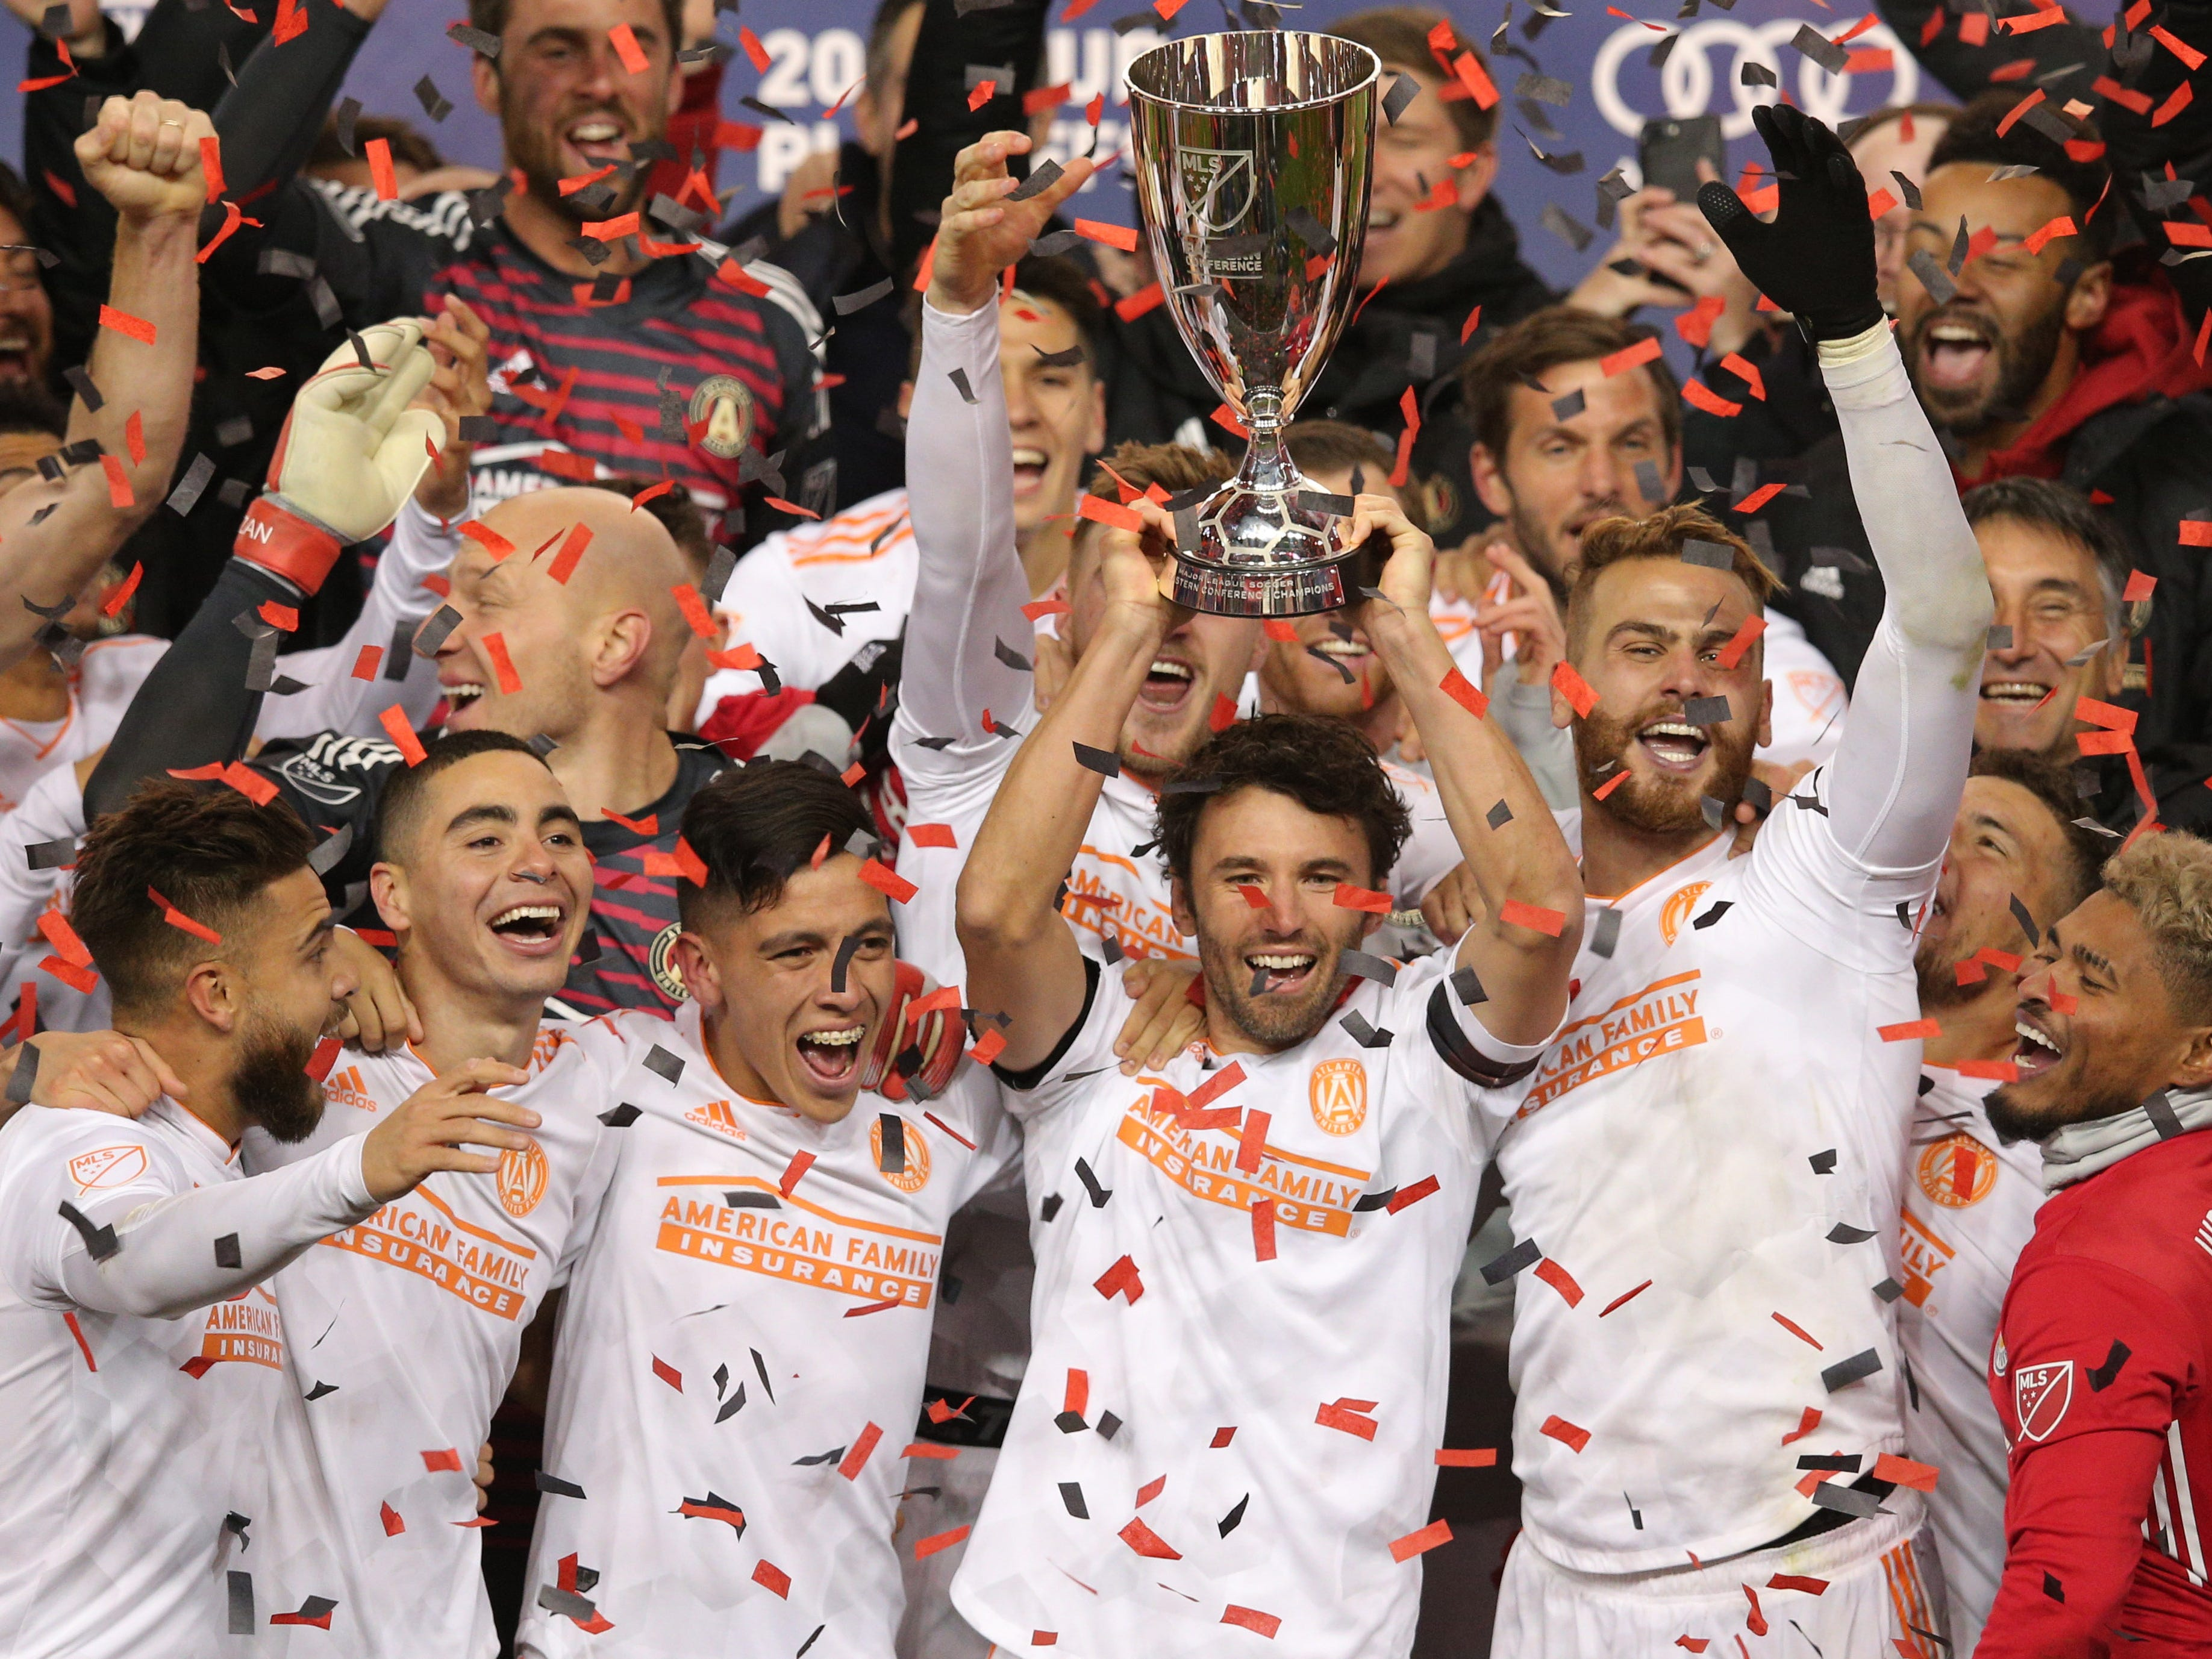 Atlanta United defender Michael Parkhurst holds up the trophy as the team celebrates after defeating the New York Red Bulls in the MLS Eastern Conference Championship at Red Bull Arena.